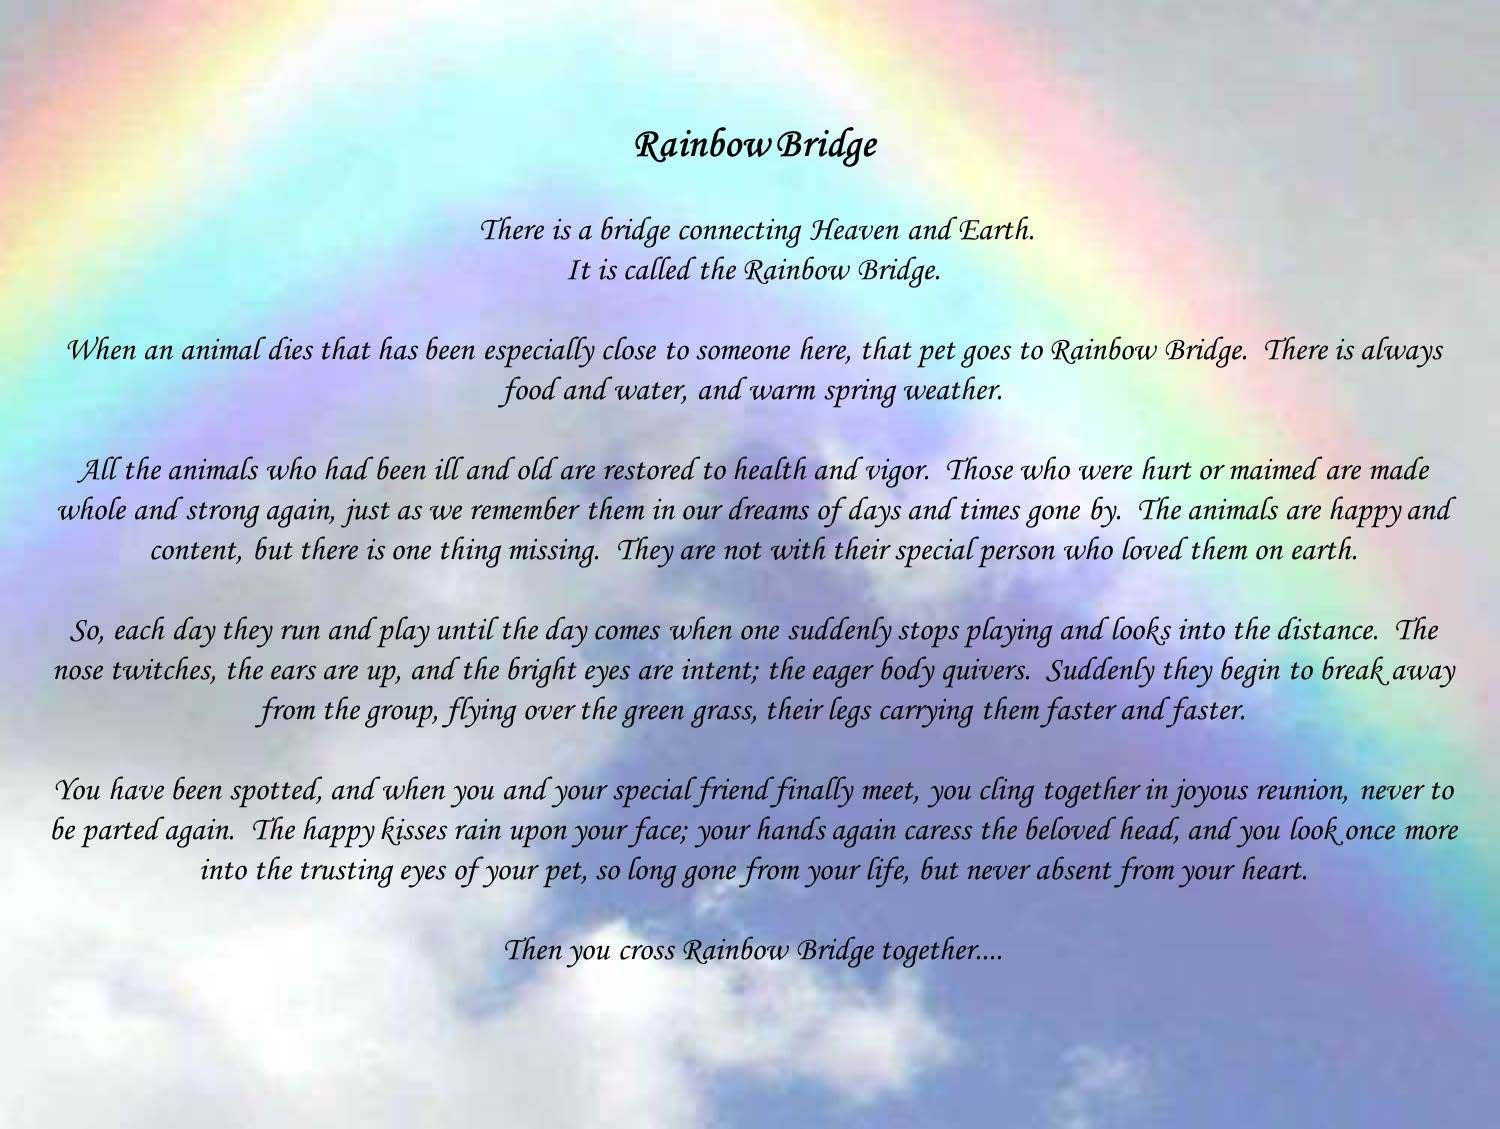 image relating to Rainbow Bridge Poem Printable Version referred to as Rainbow Poems And Offers. QuotesGram Canine Rainbow poem